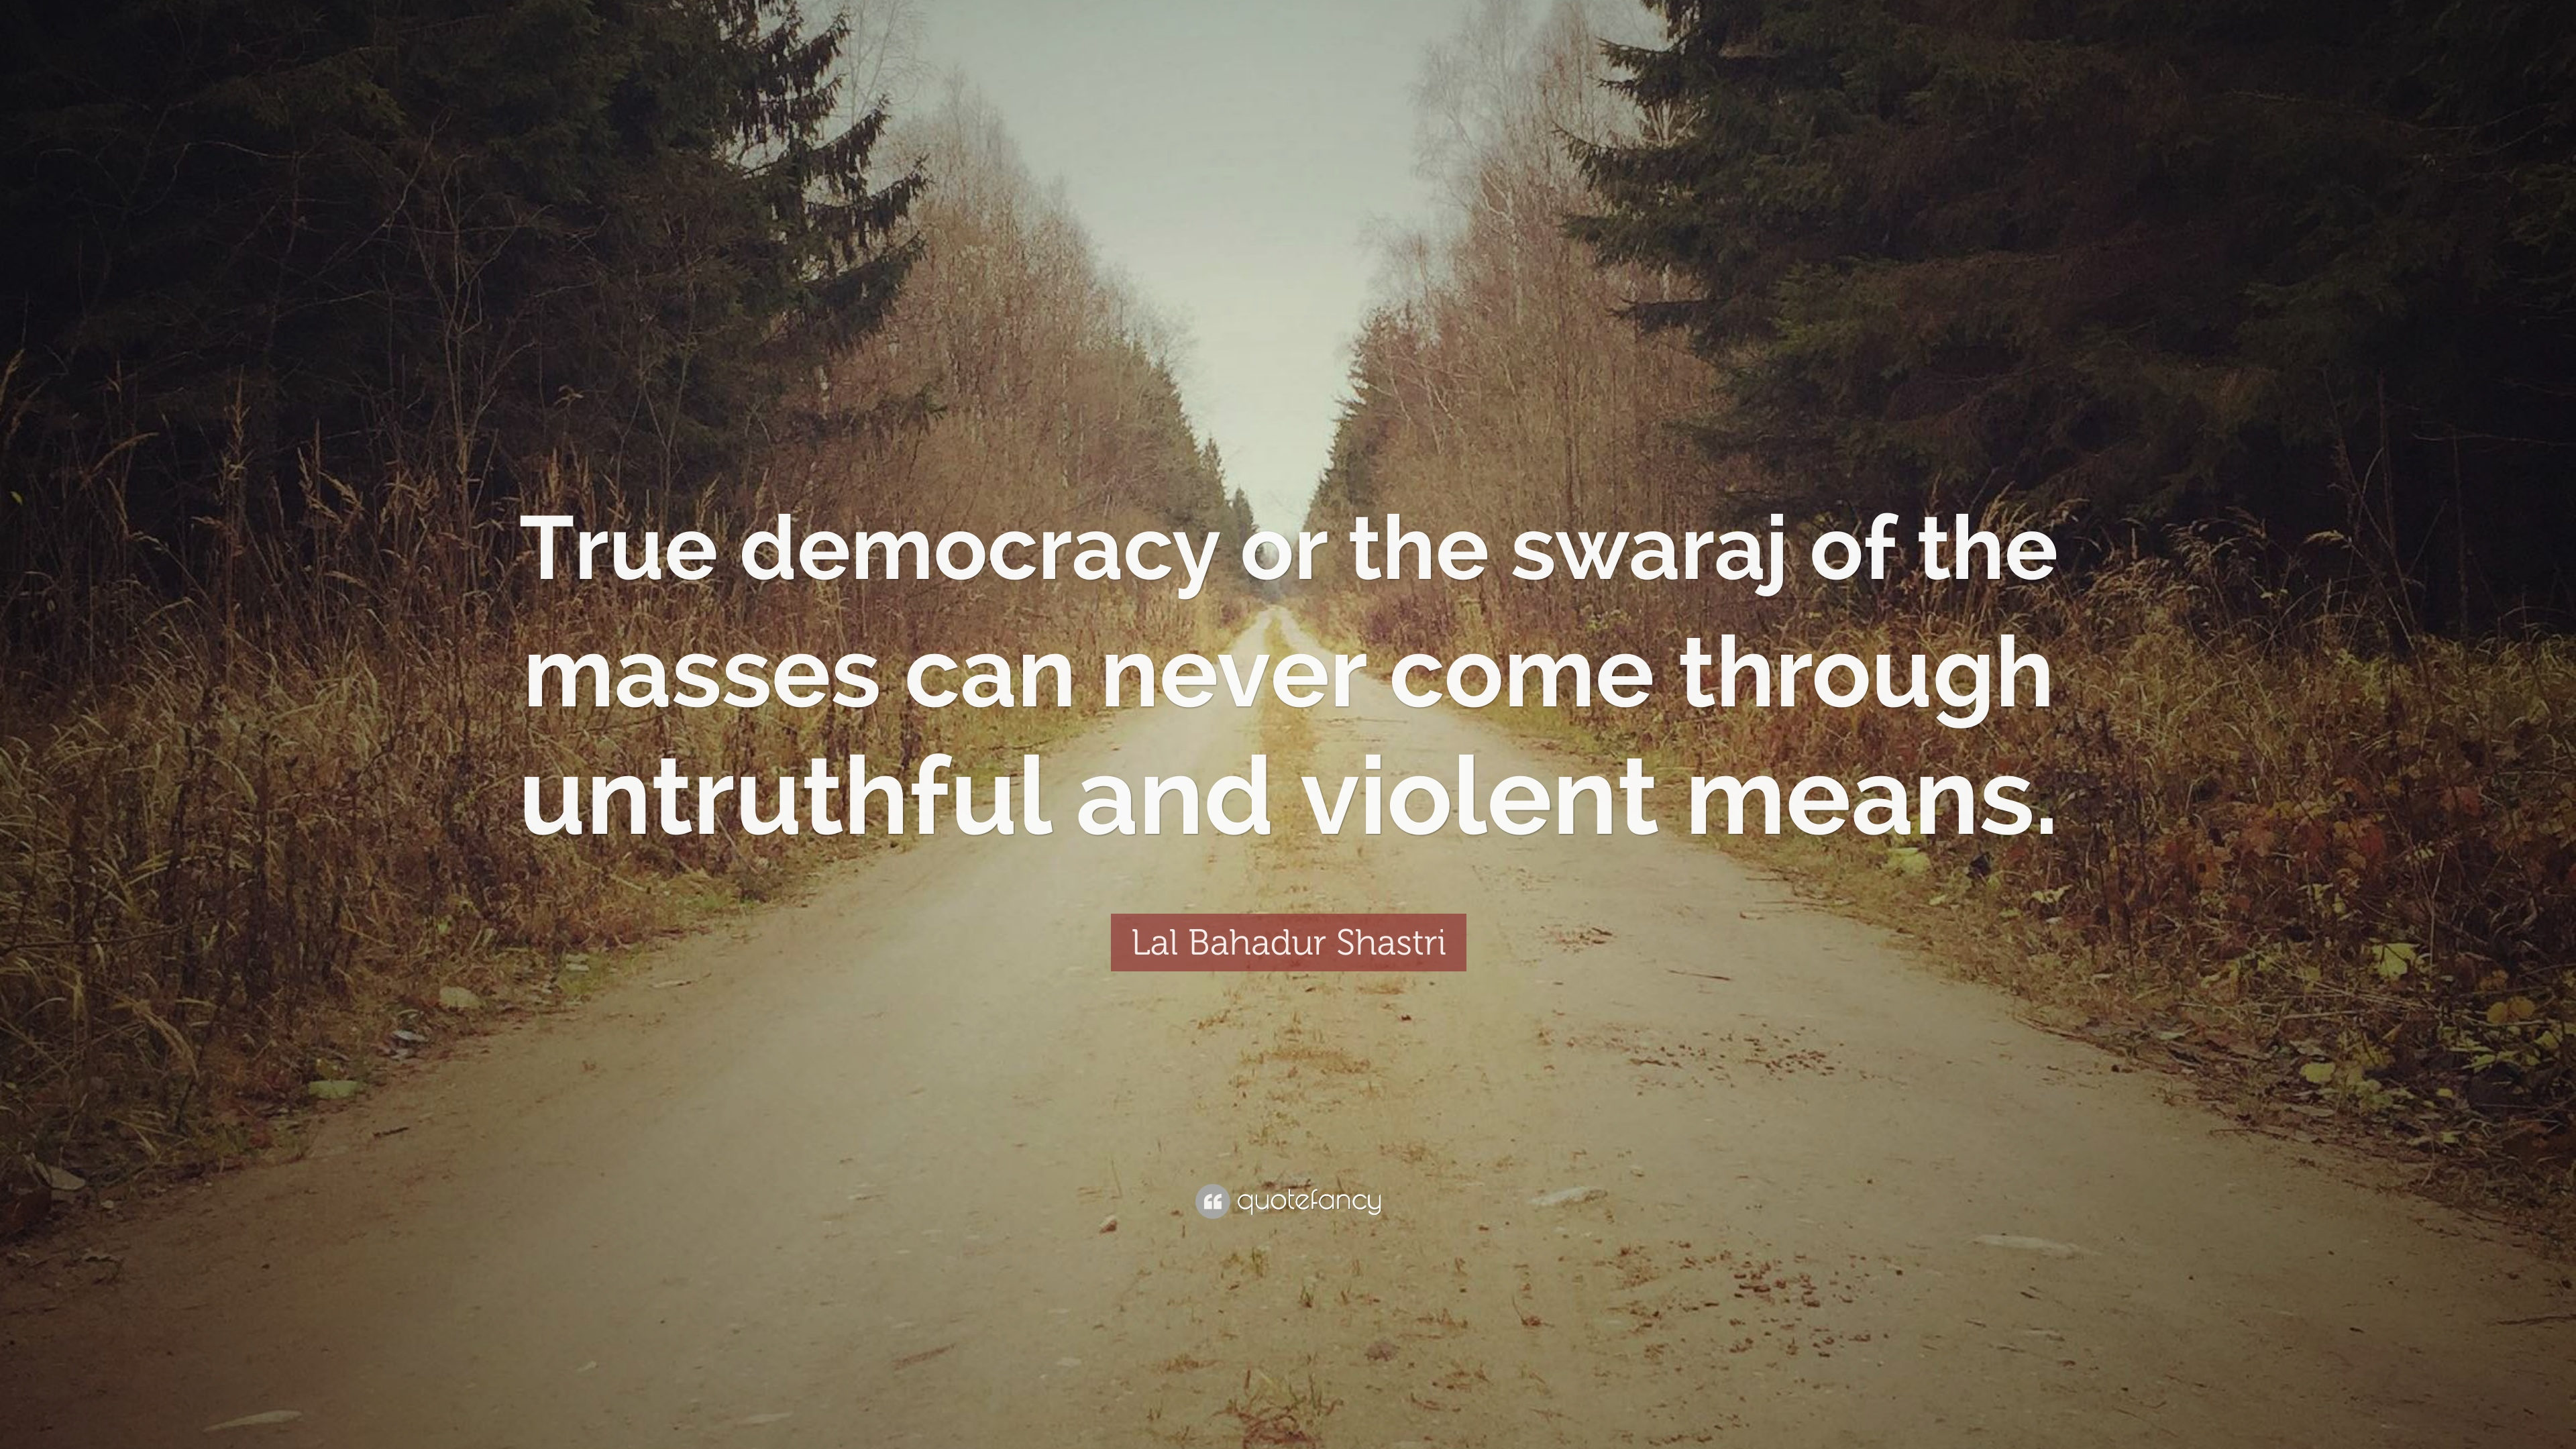 true democracy Definition of true democracy: democracy is a dynamic participatory means of governance democracy is a dynamic set of governing principles and laws for establishing and maintaining social, political, and economic standards within a community, society and country.